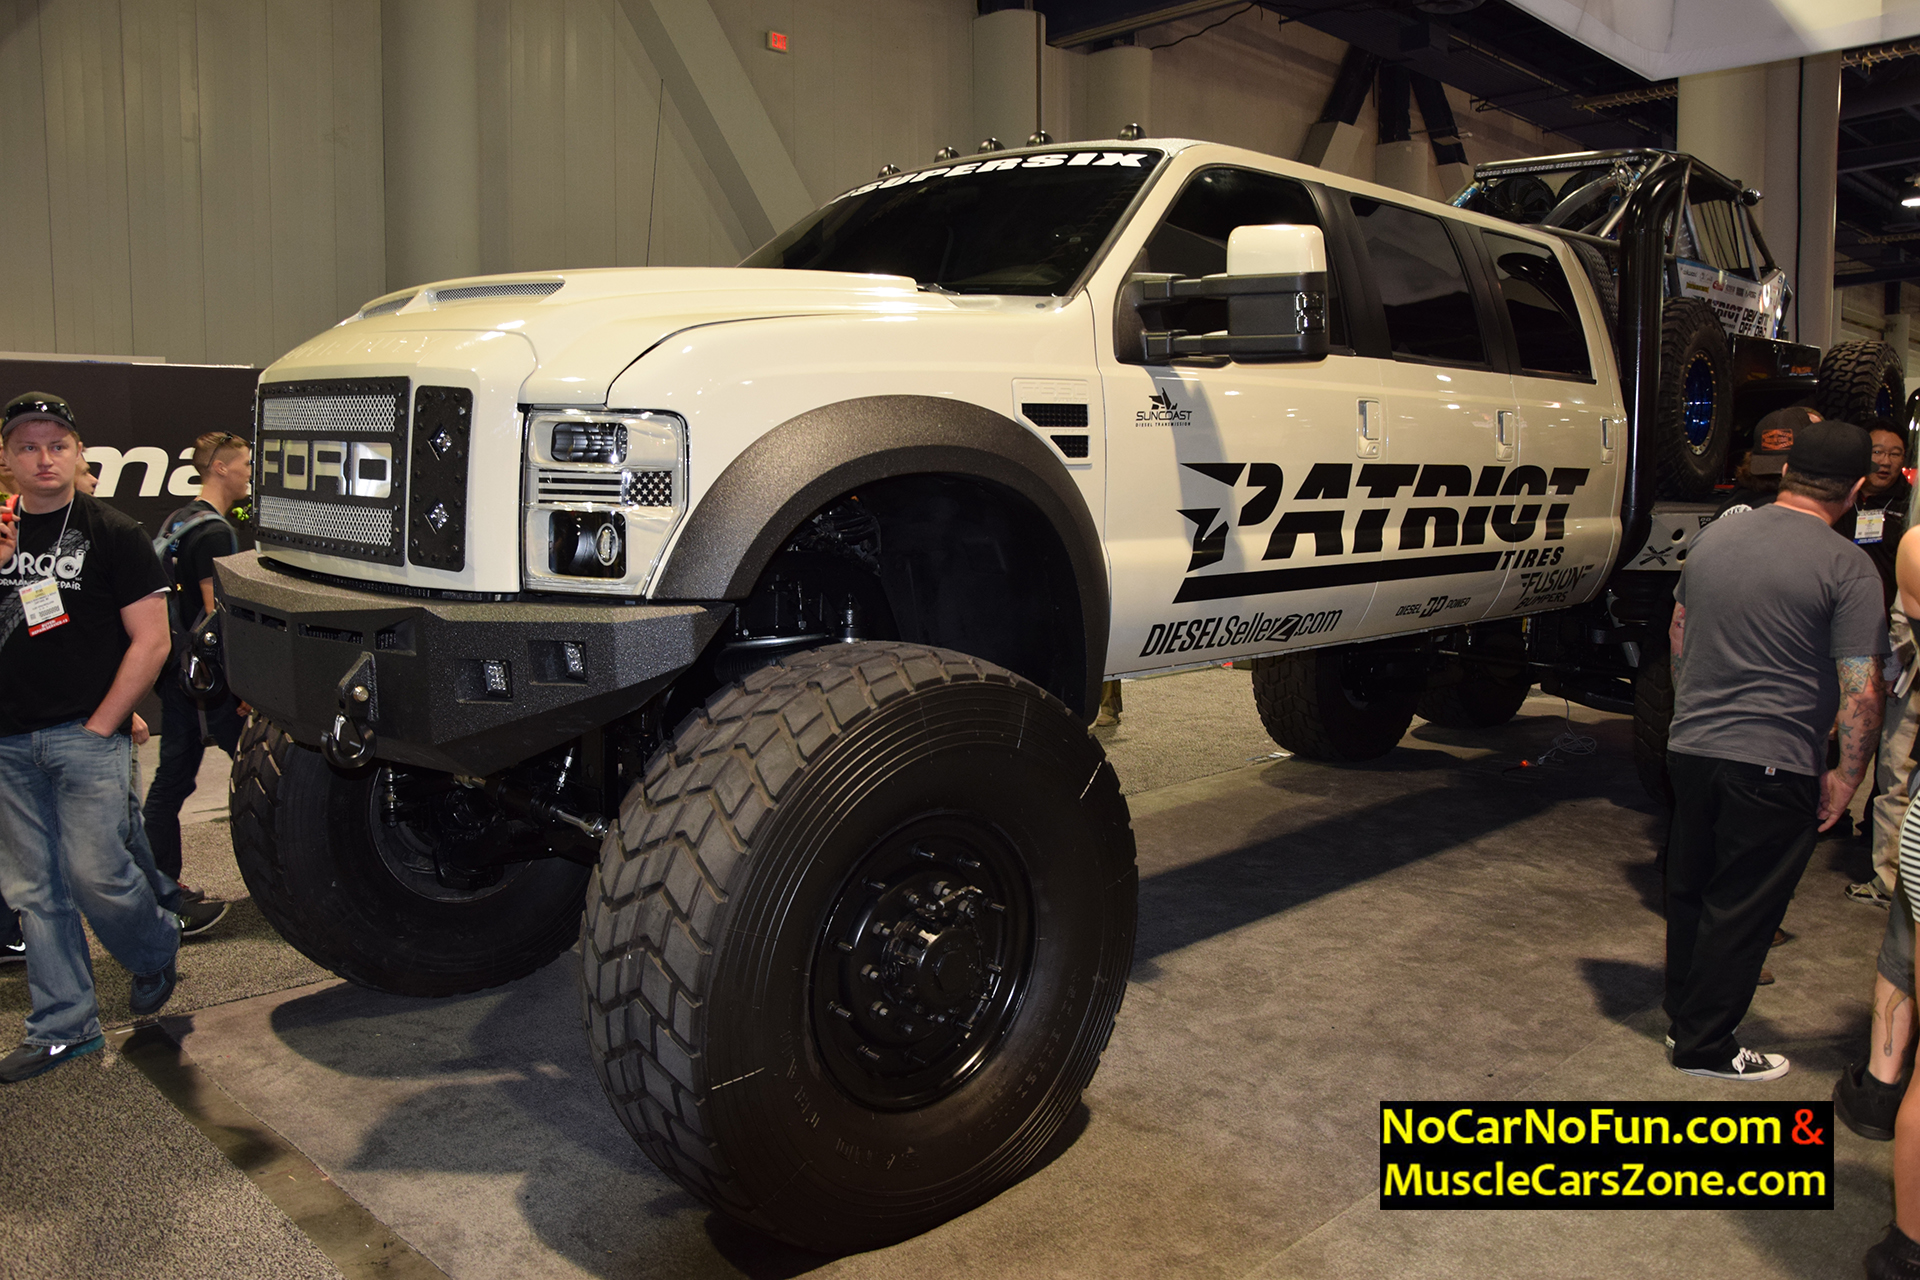 Huge 6-door Ford Truck by DieselSellerz with Buggy On Top - 2015 SEMA Motor Show - 1 - Muscle ...